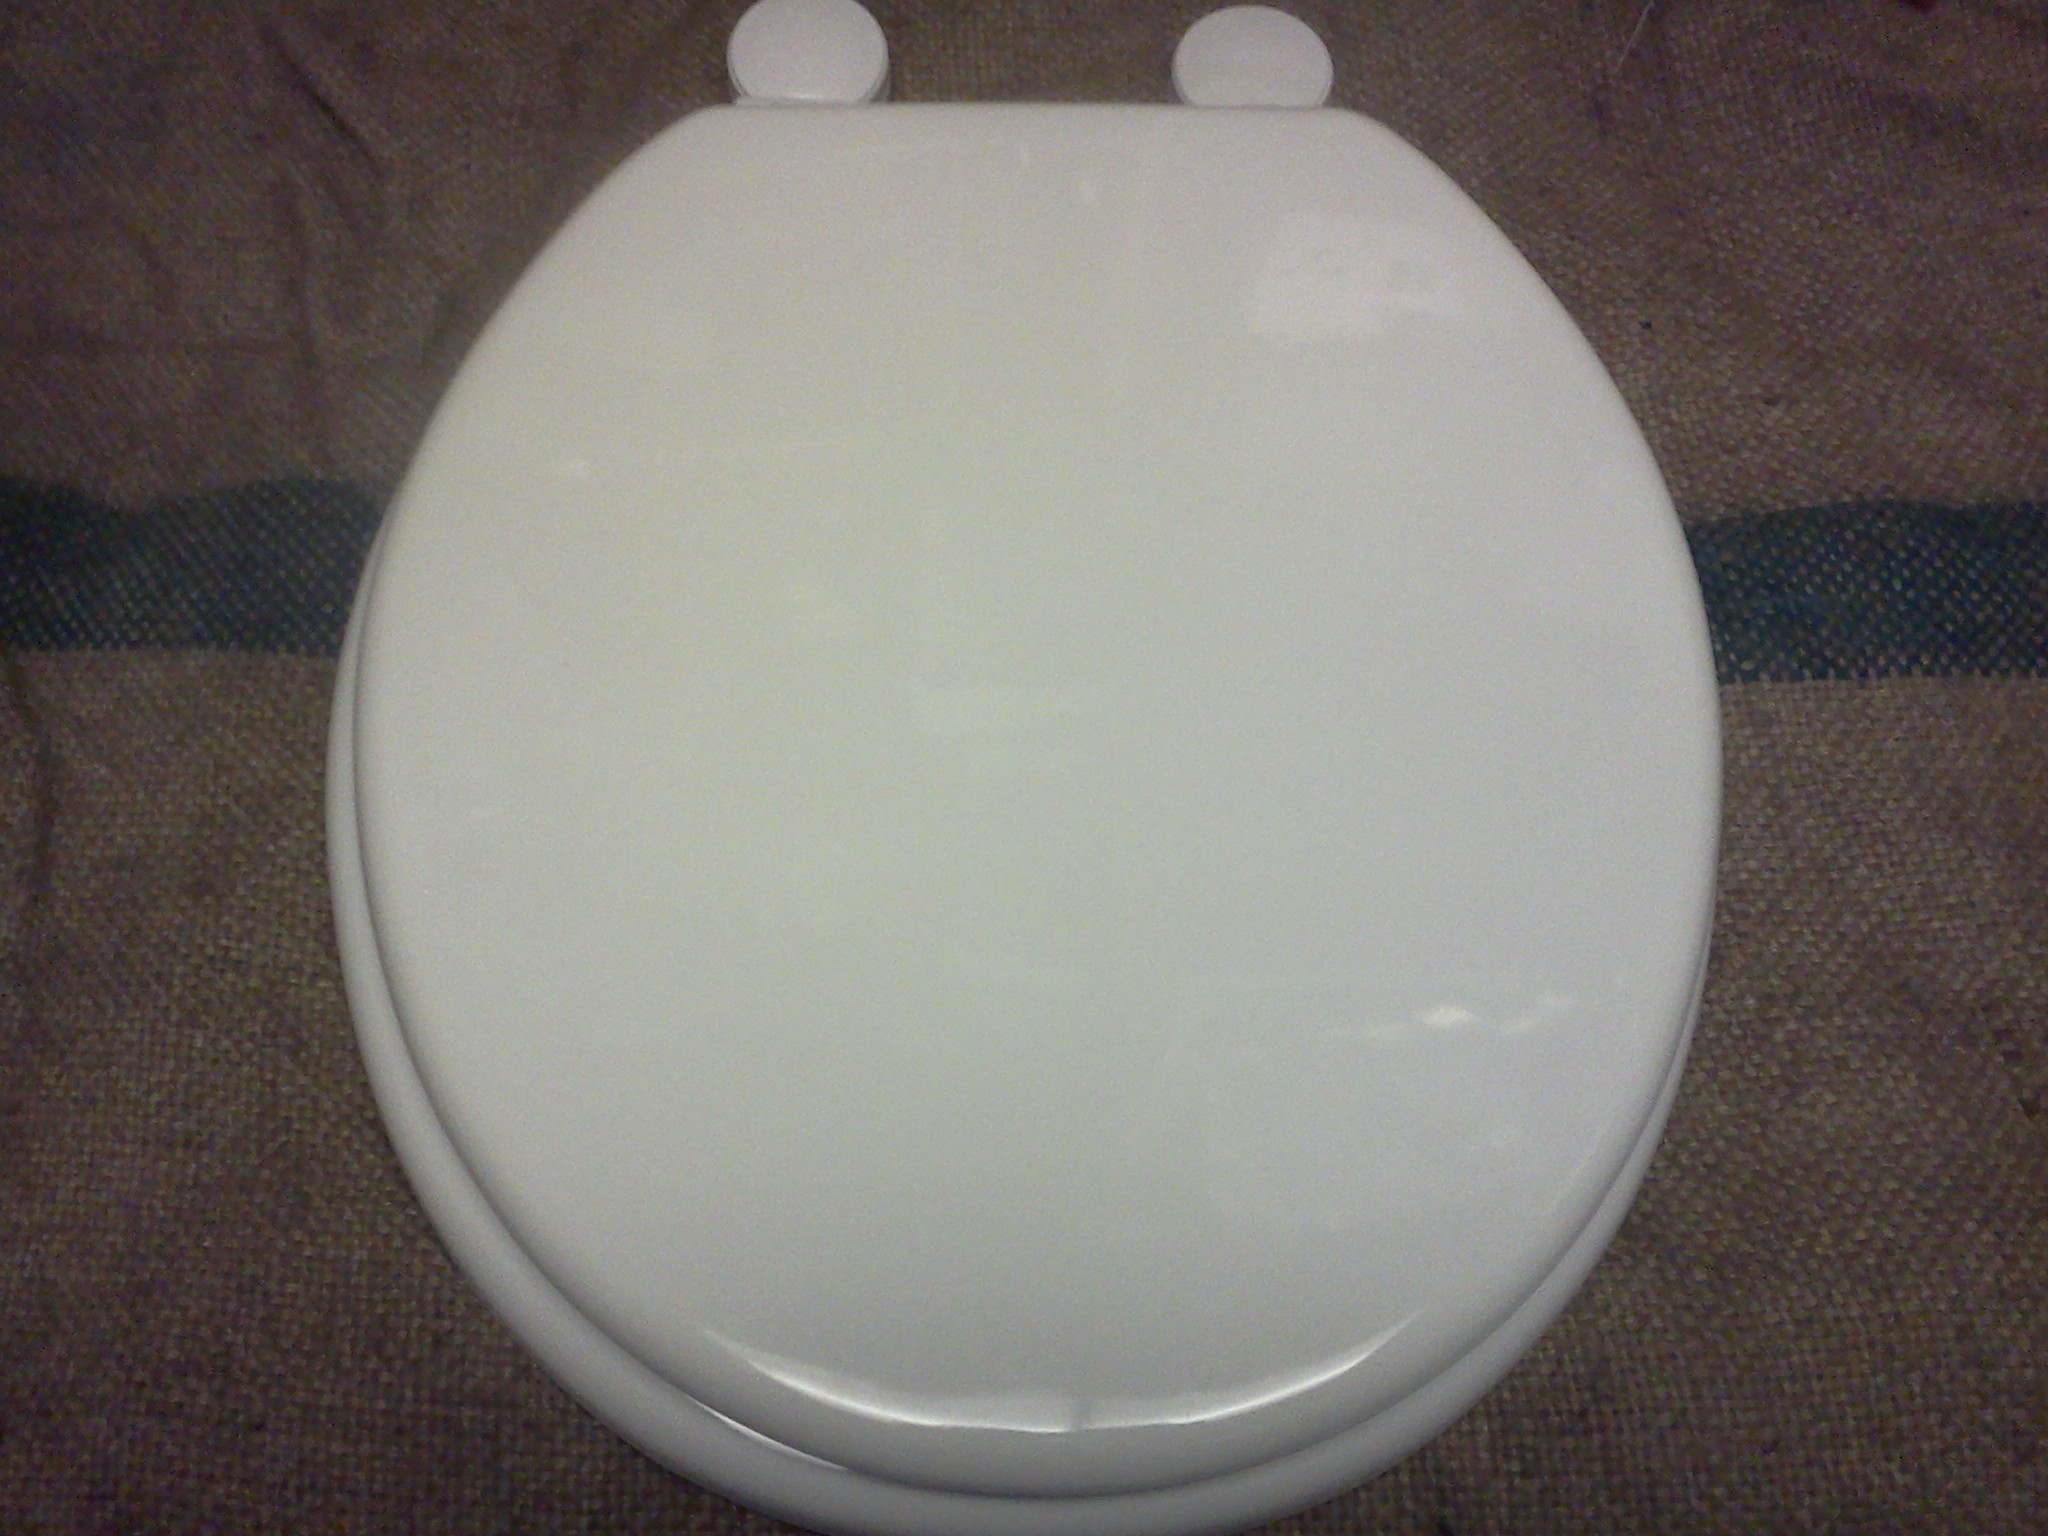 cedo toilet seat fitting instructions